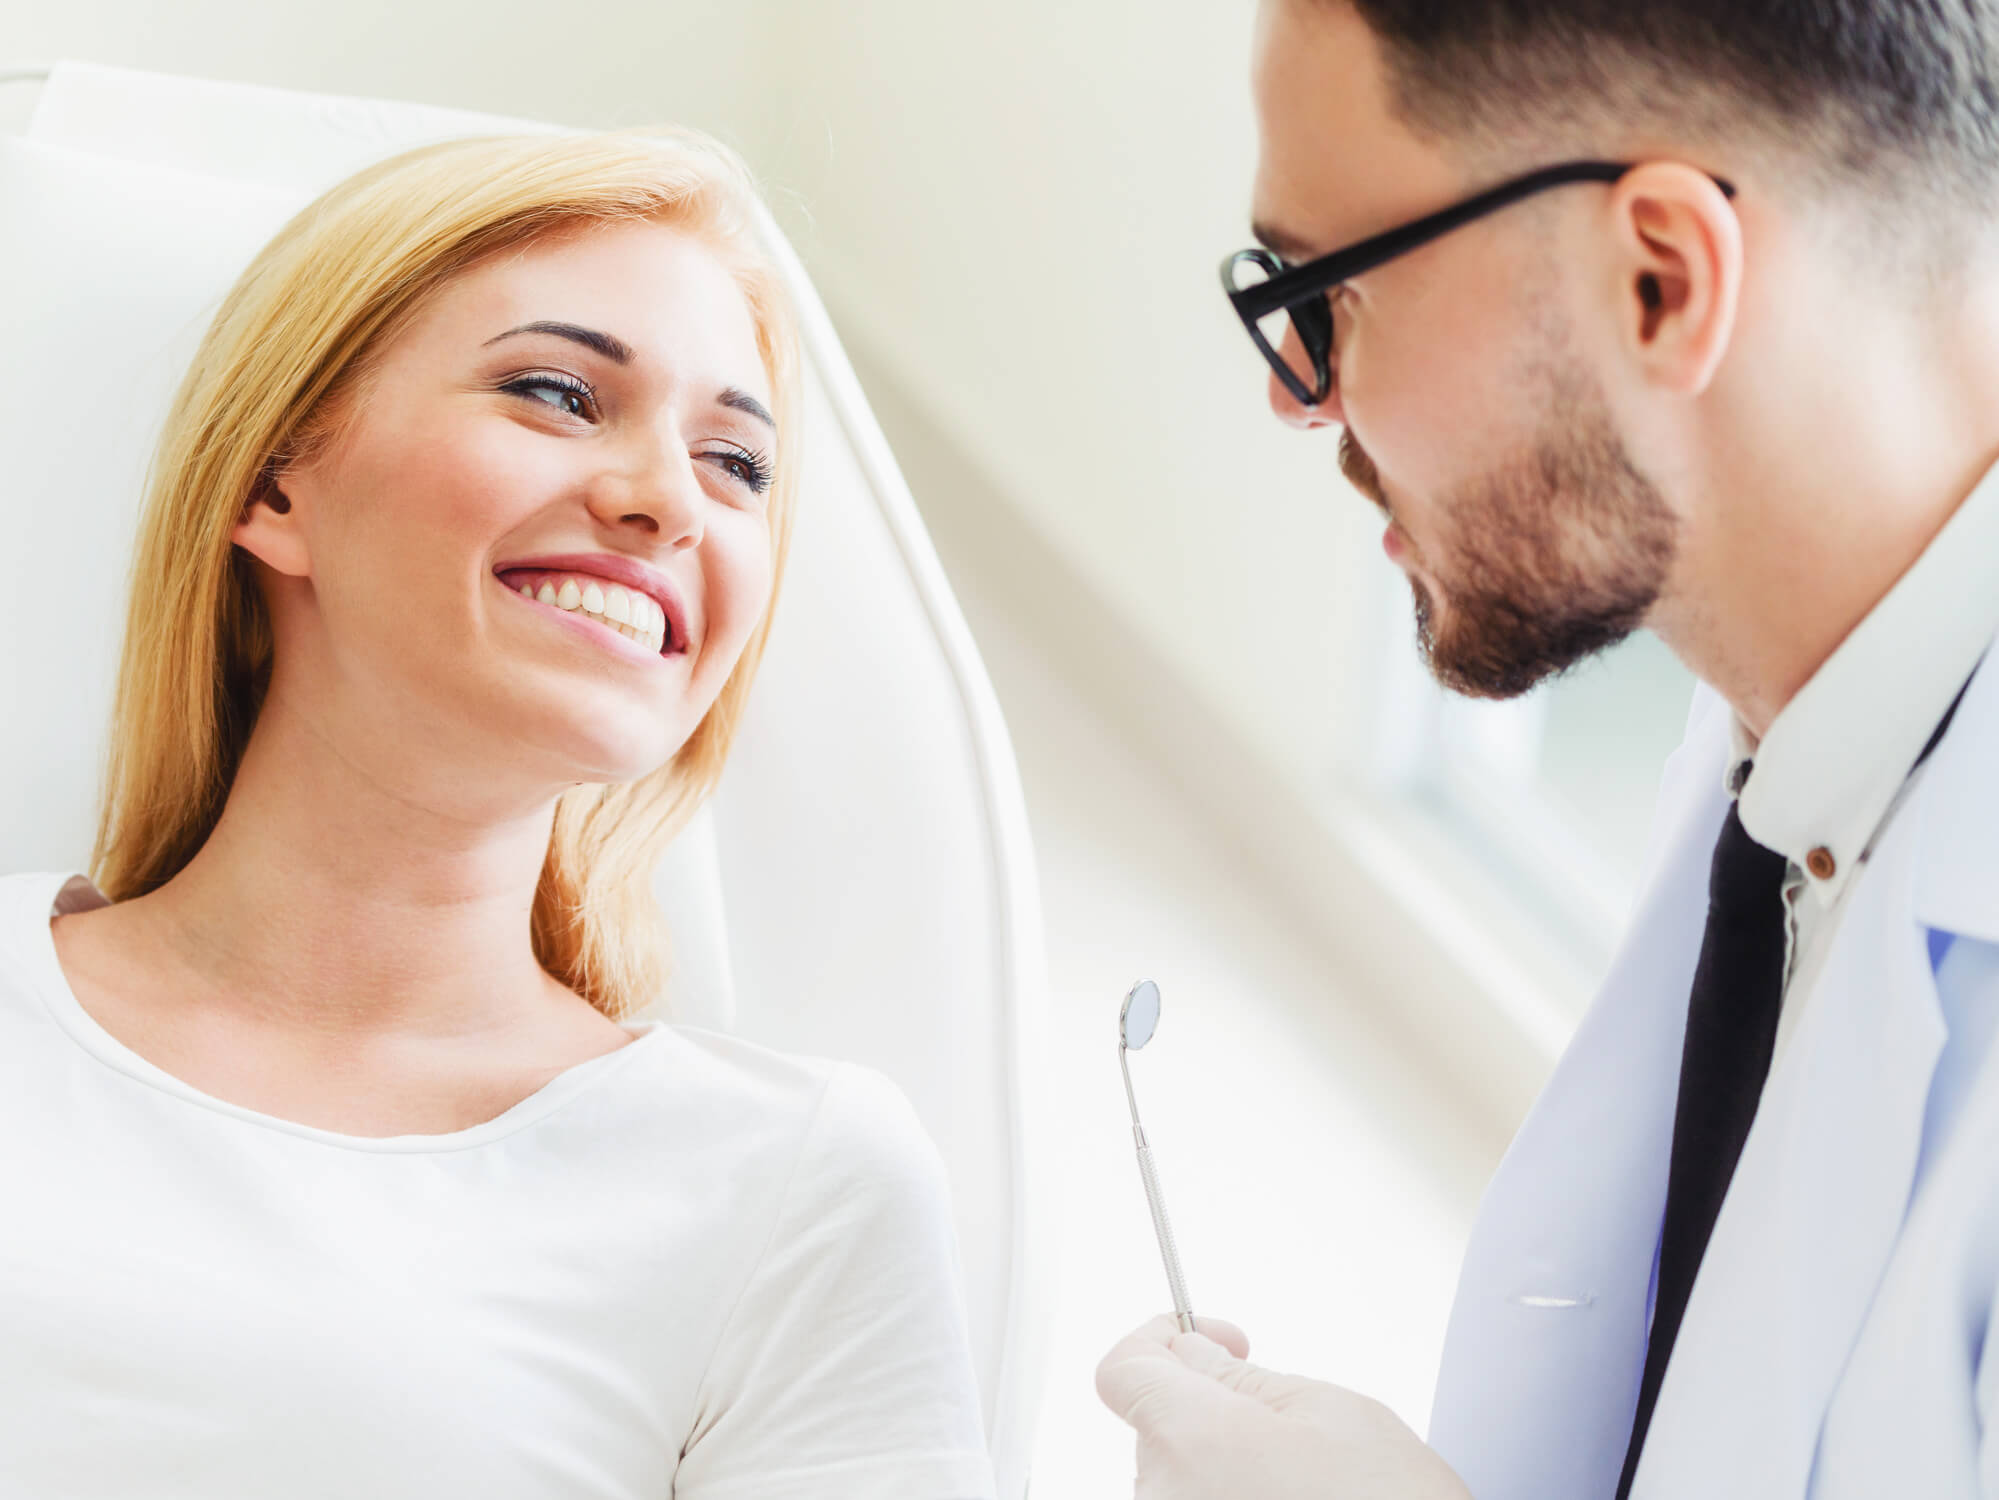 where can i get tooth extractions in simpsonville sc?